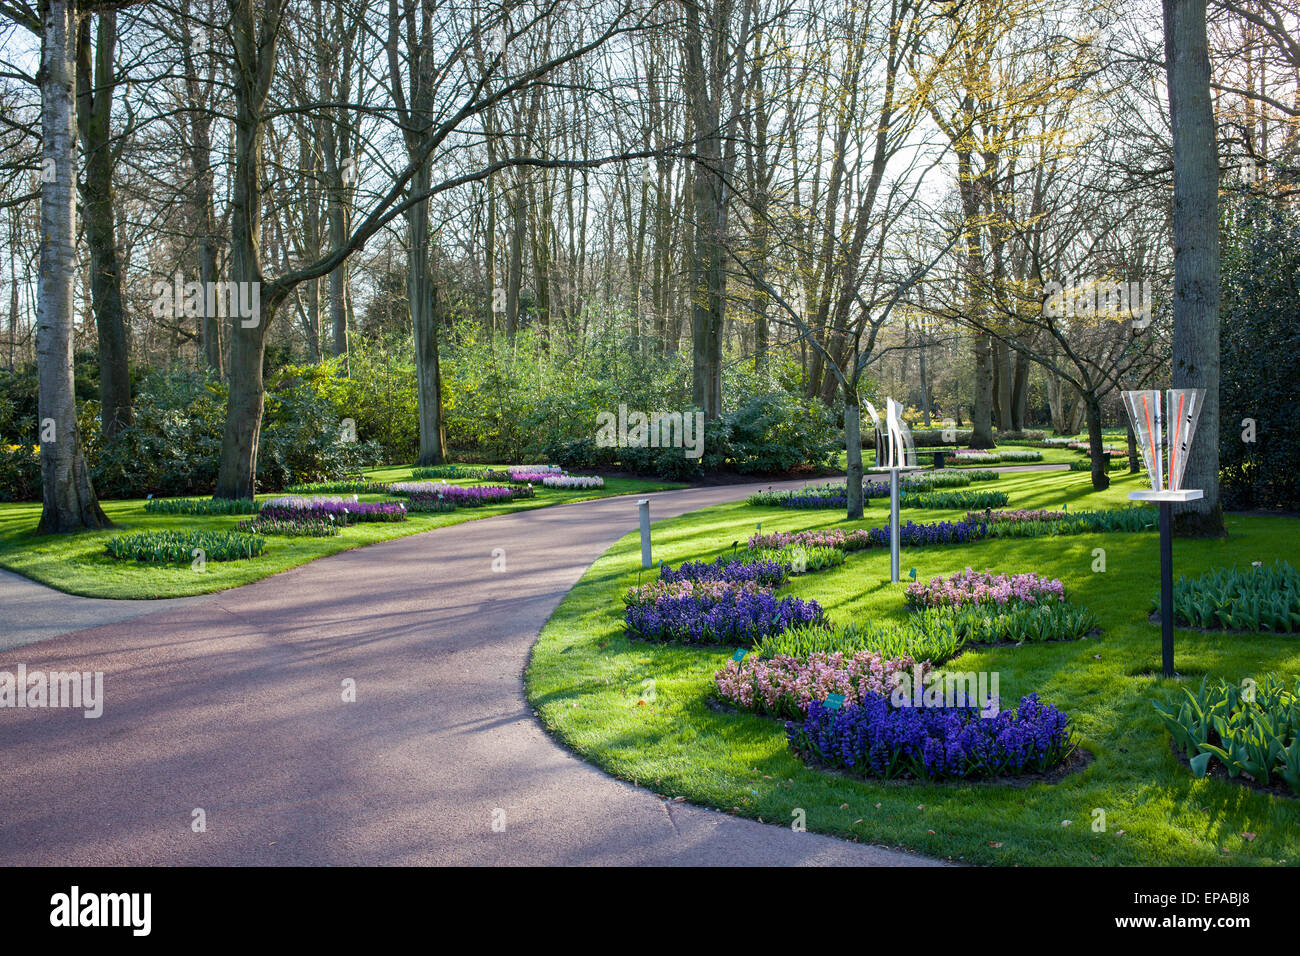 Famous flowers park Keukenhof in Netherlands also known as the Garden of Europe, is the world's largest flower - Stock Image